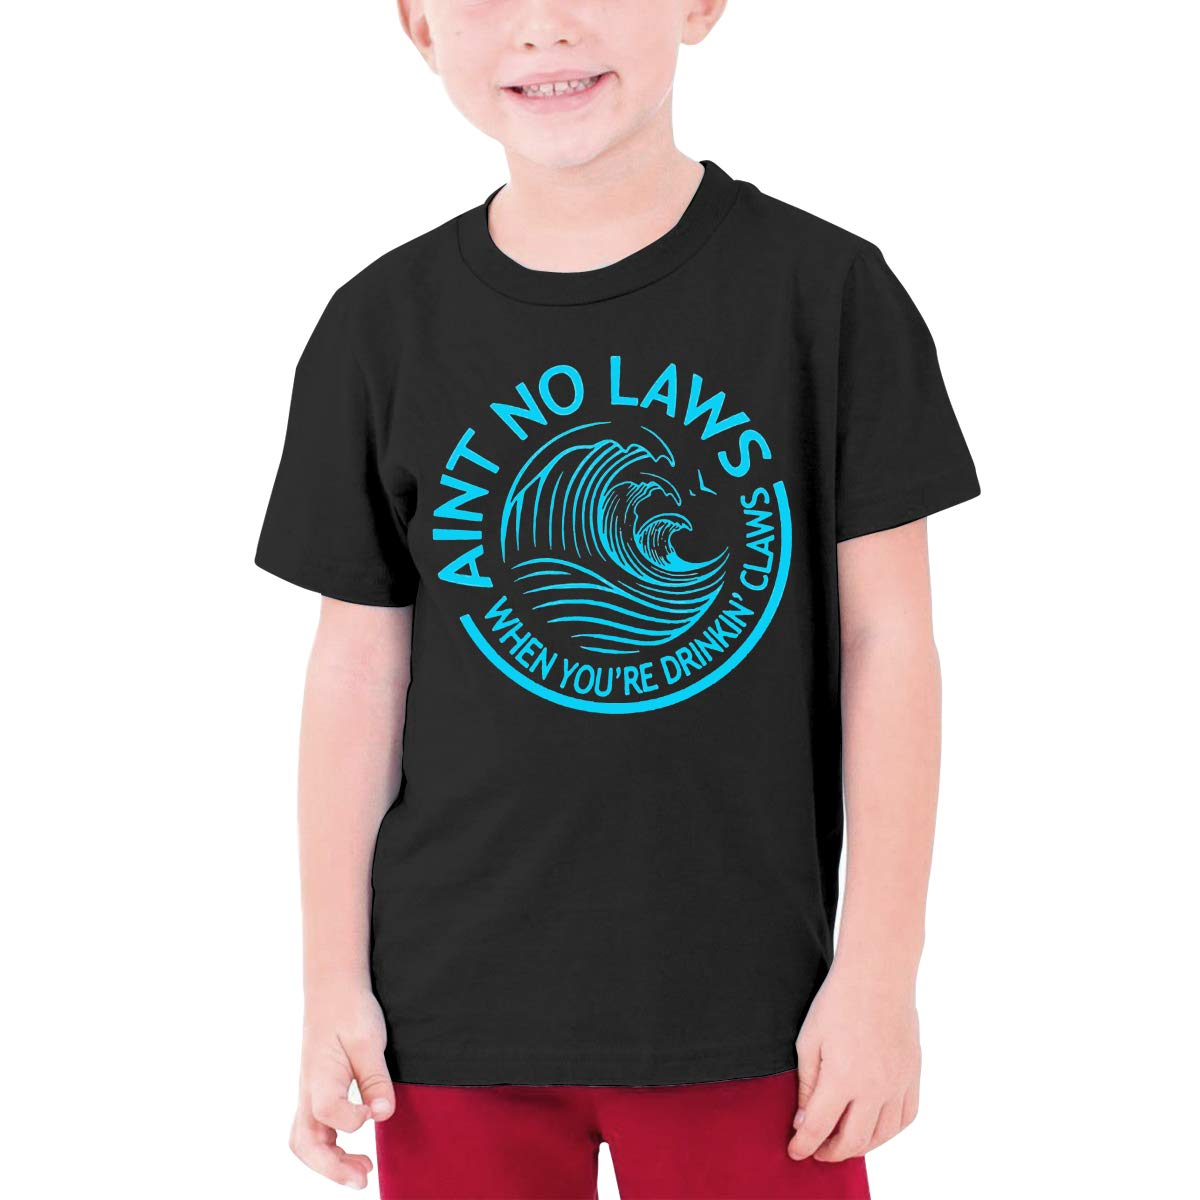 Alffe Aint No Laws When Drinking Claws T-Shirt Boy Kids O-Neck 3D Printing Youth Fashion Tops